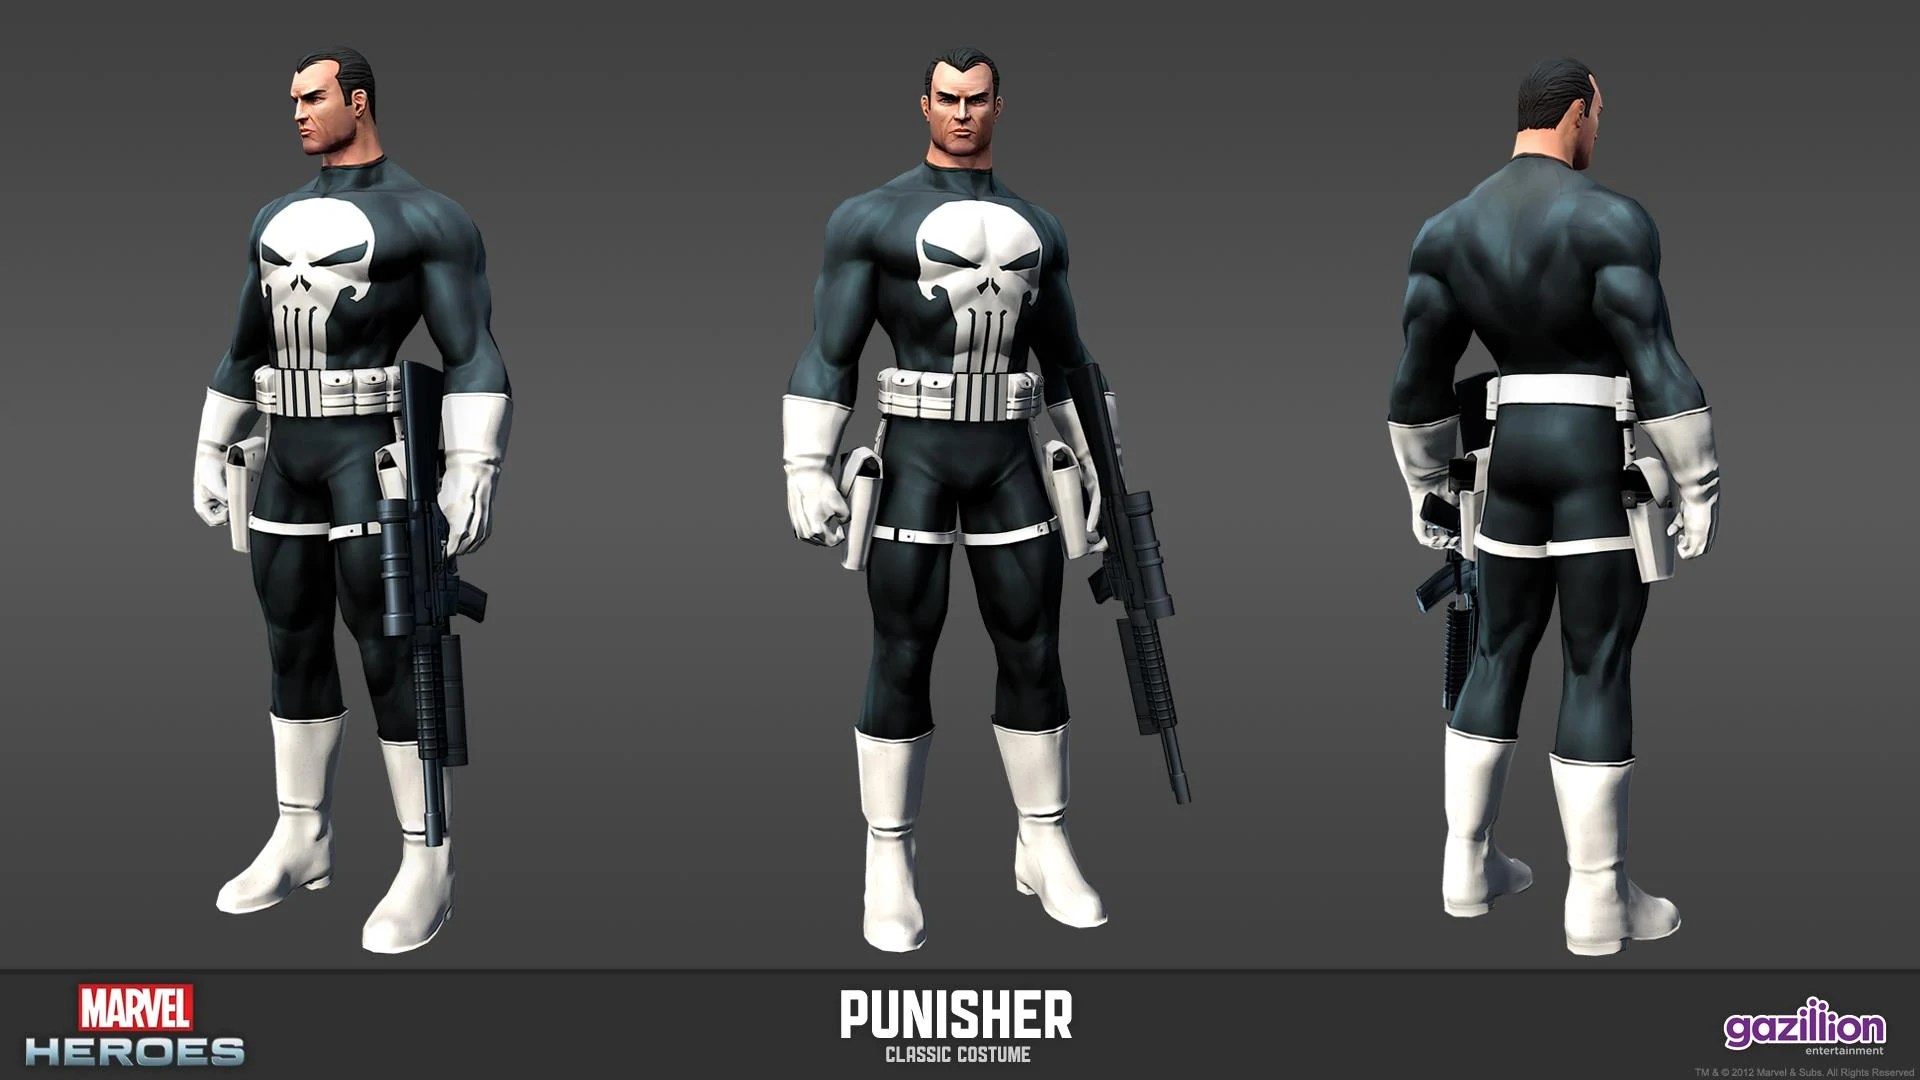 Classic Marvel Heroes Punisher Costumes